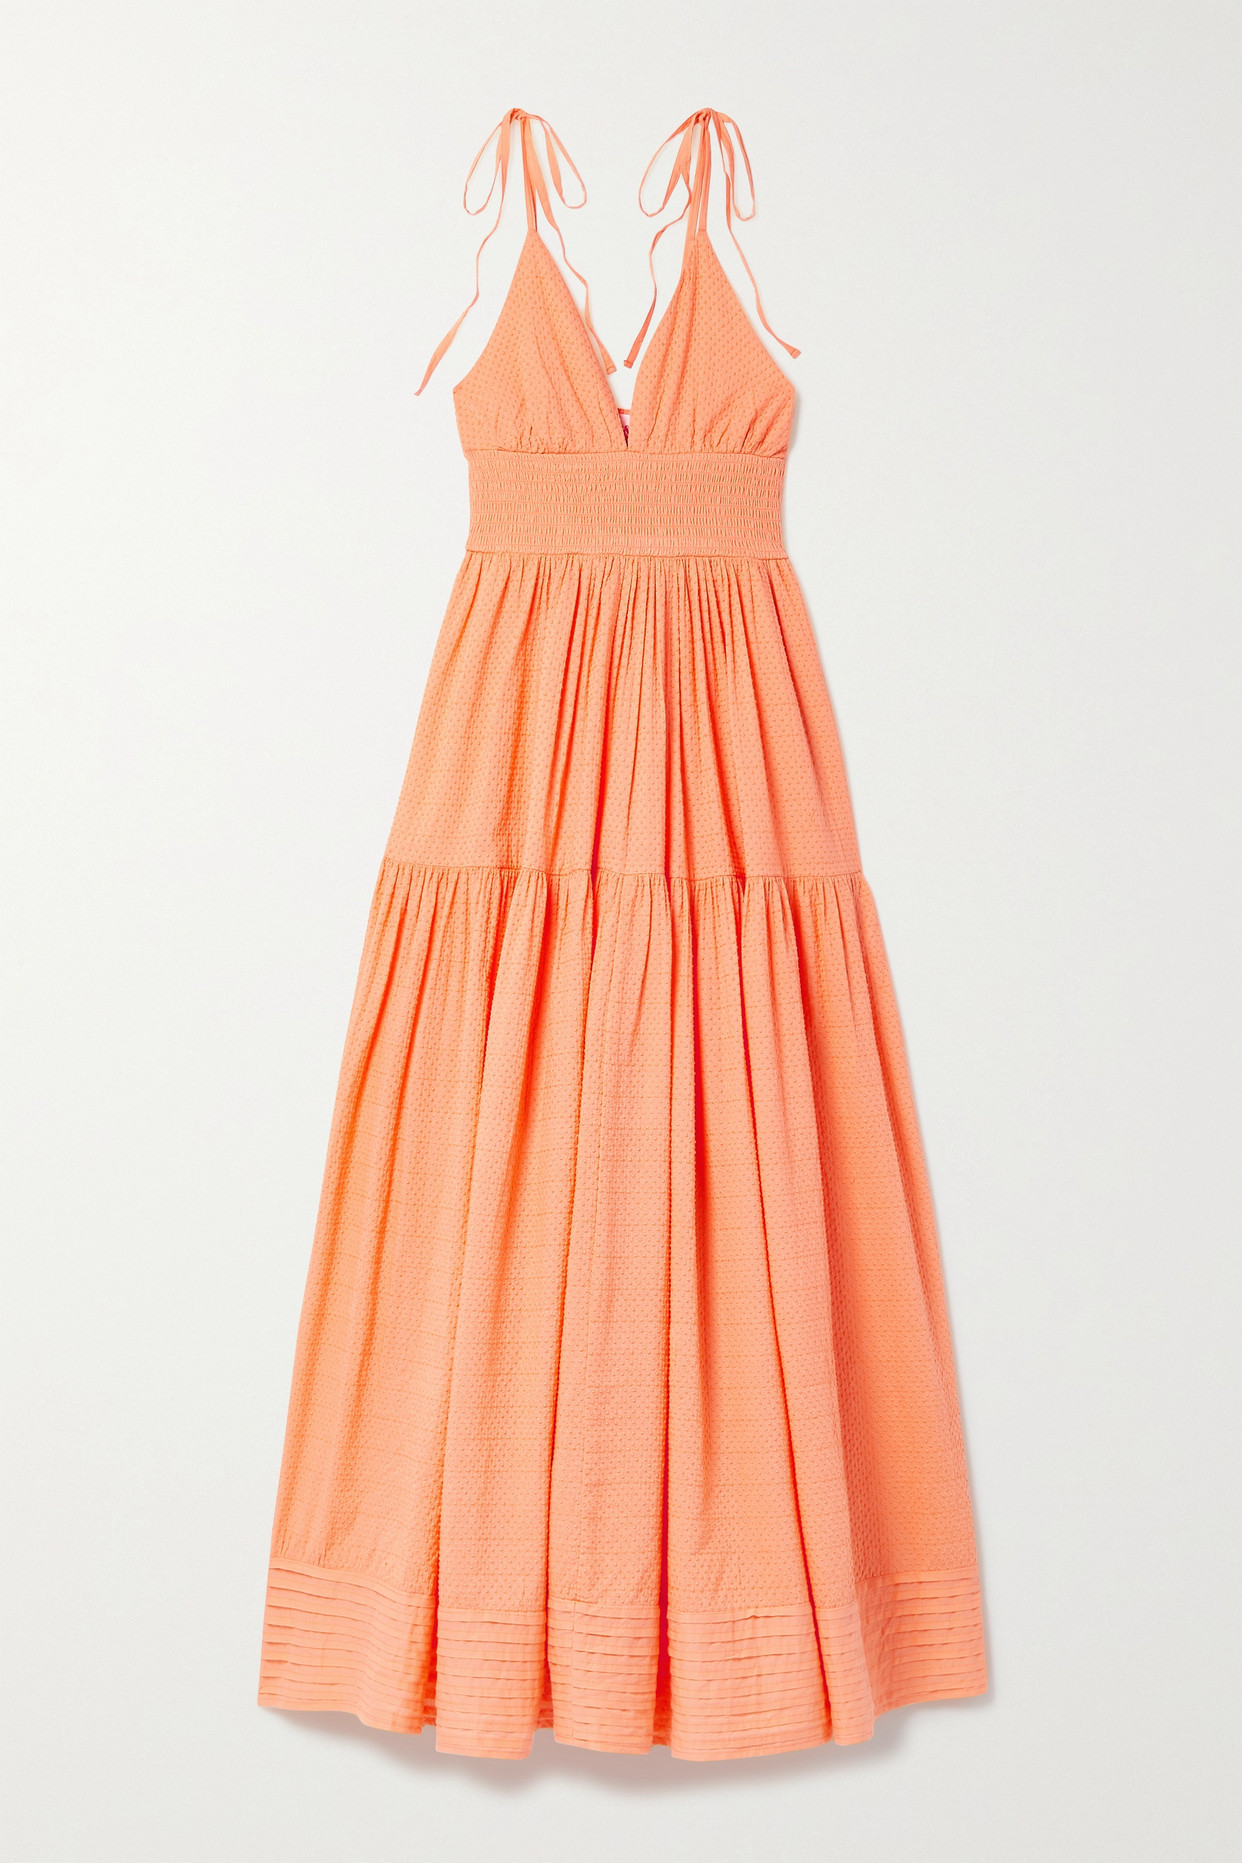 Solid & Striped The Melody Shirred Swiss-dot Cotton Maxi Dress In Orange